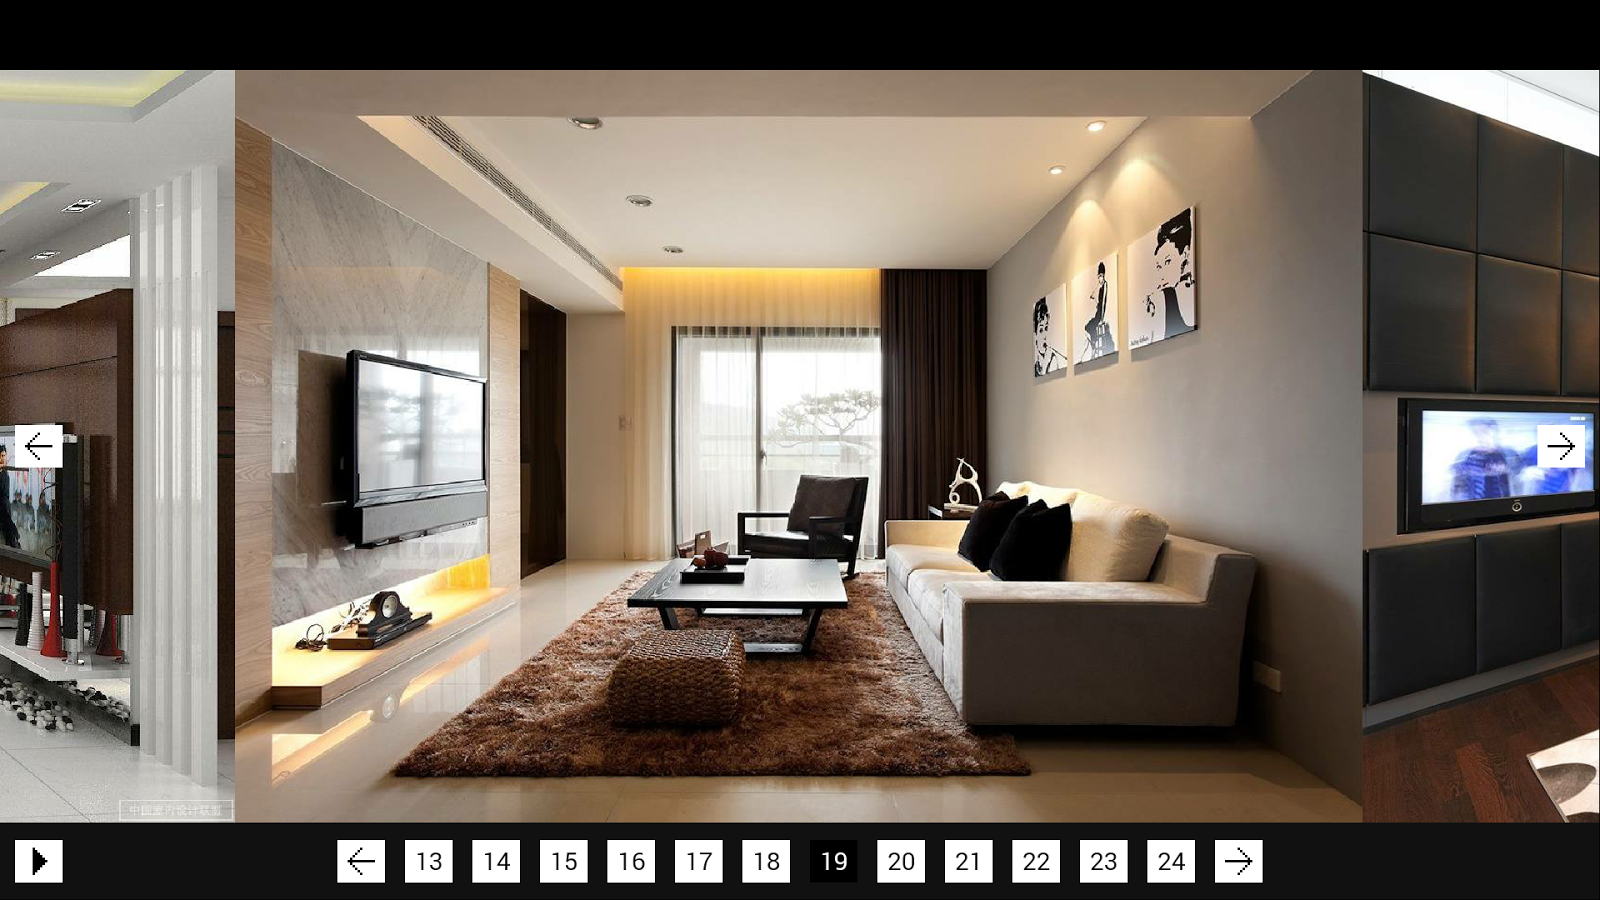 Home interior design android apps on google play for Interior house design burlington